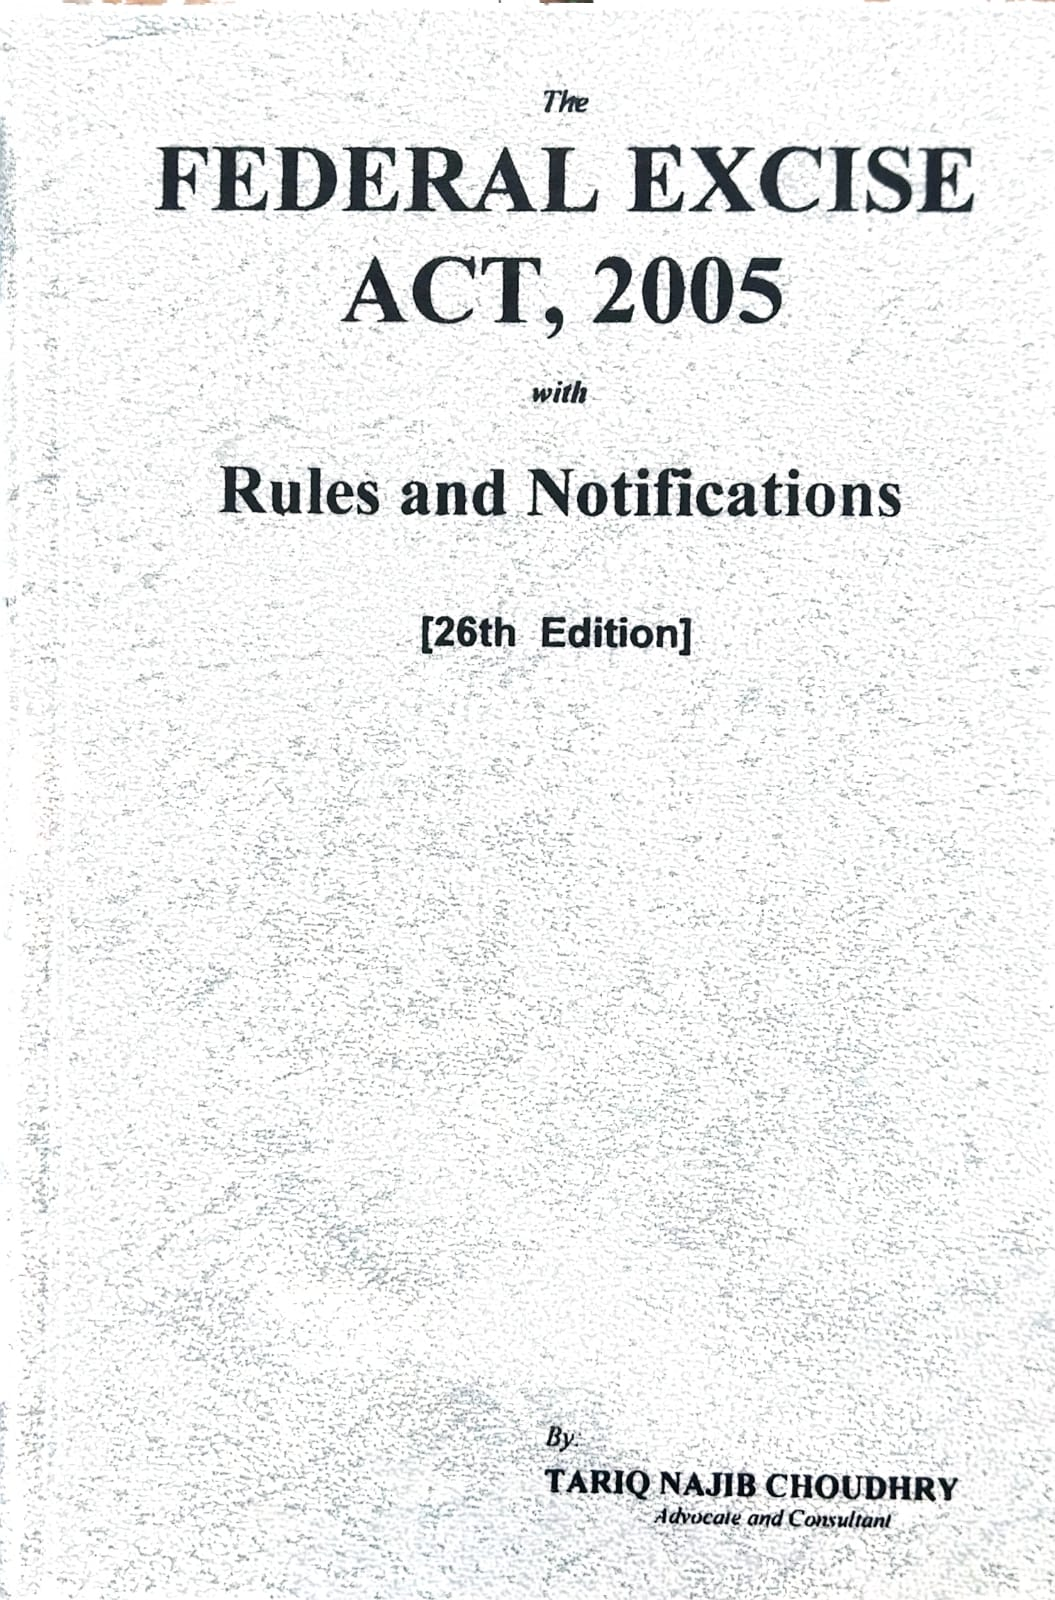 The Federal Excise Act, 2005 with Rules and Notifications 26th Edition (Amended Upto 1st August, 2021)